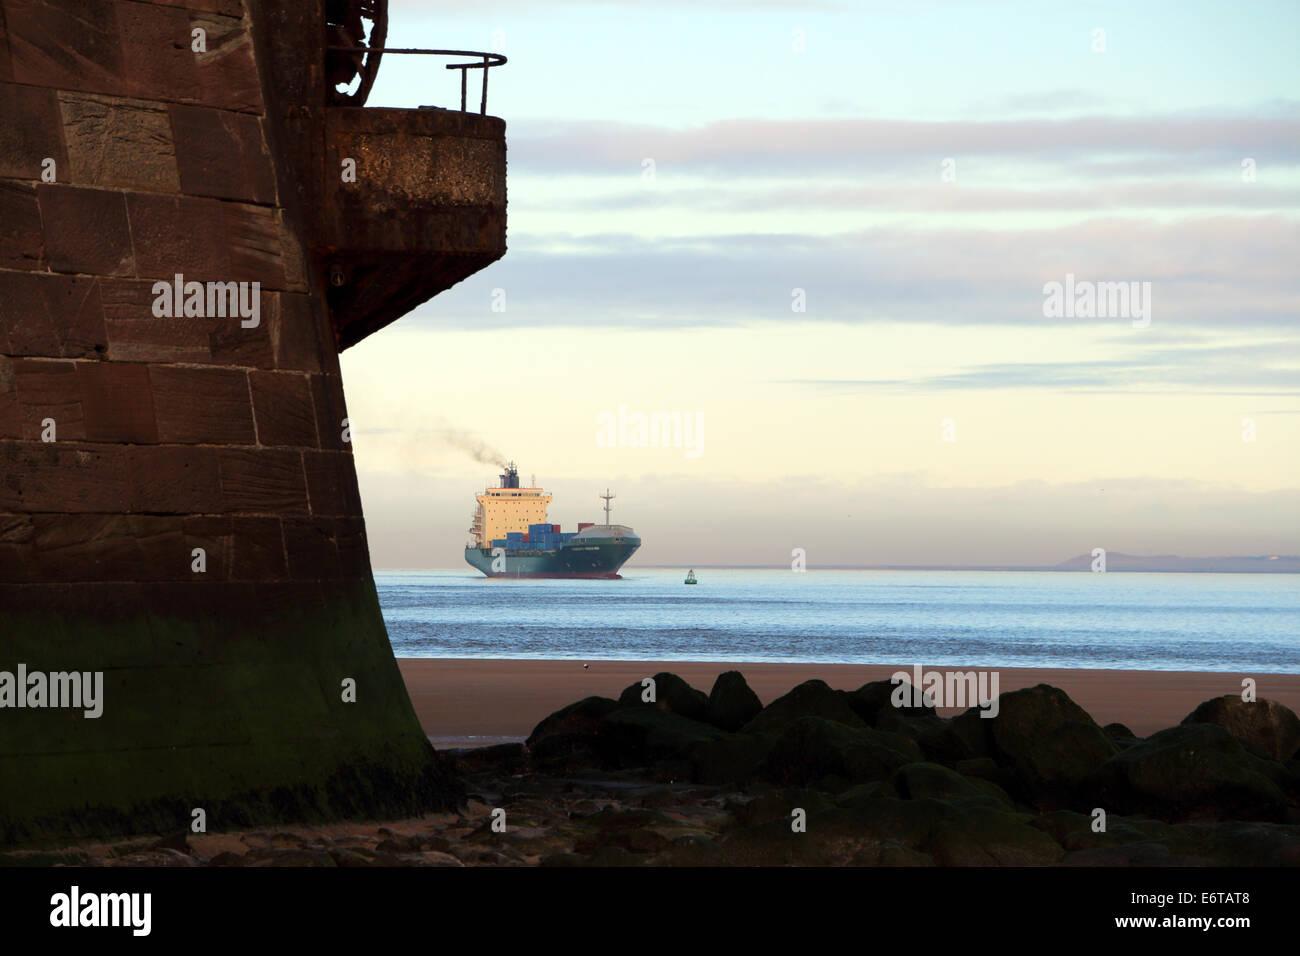 New Brighton River Mersey  Container Ship - Stock Image